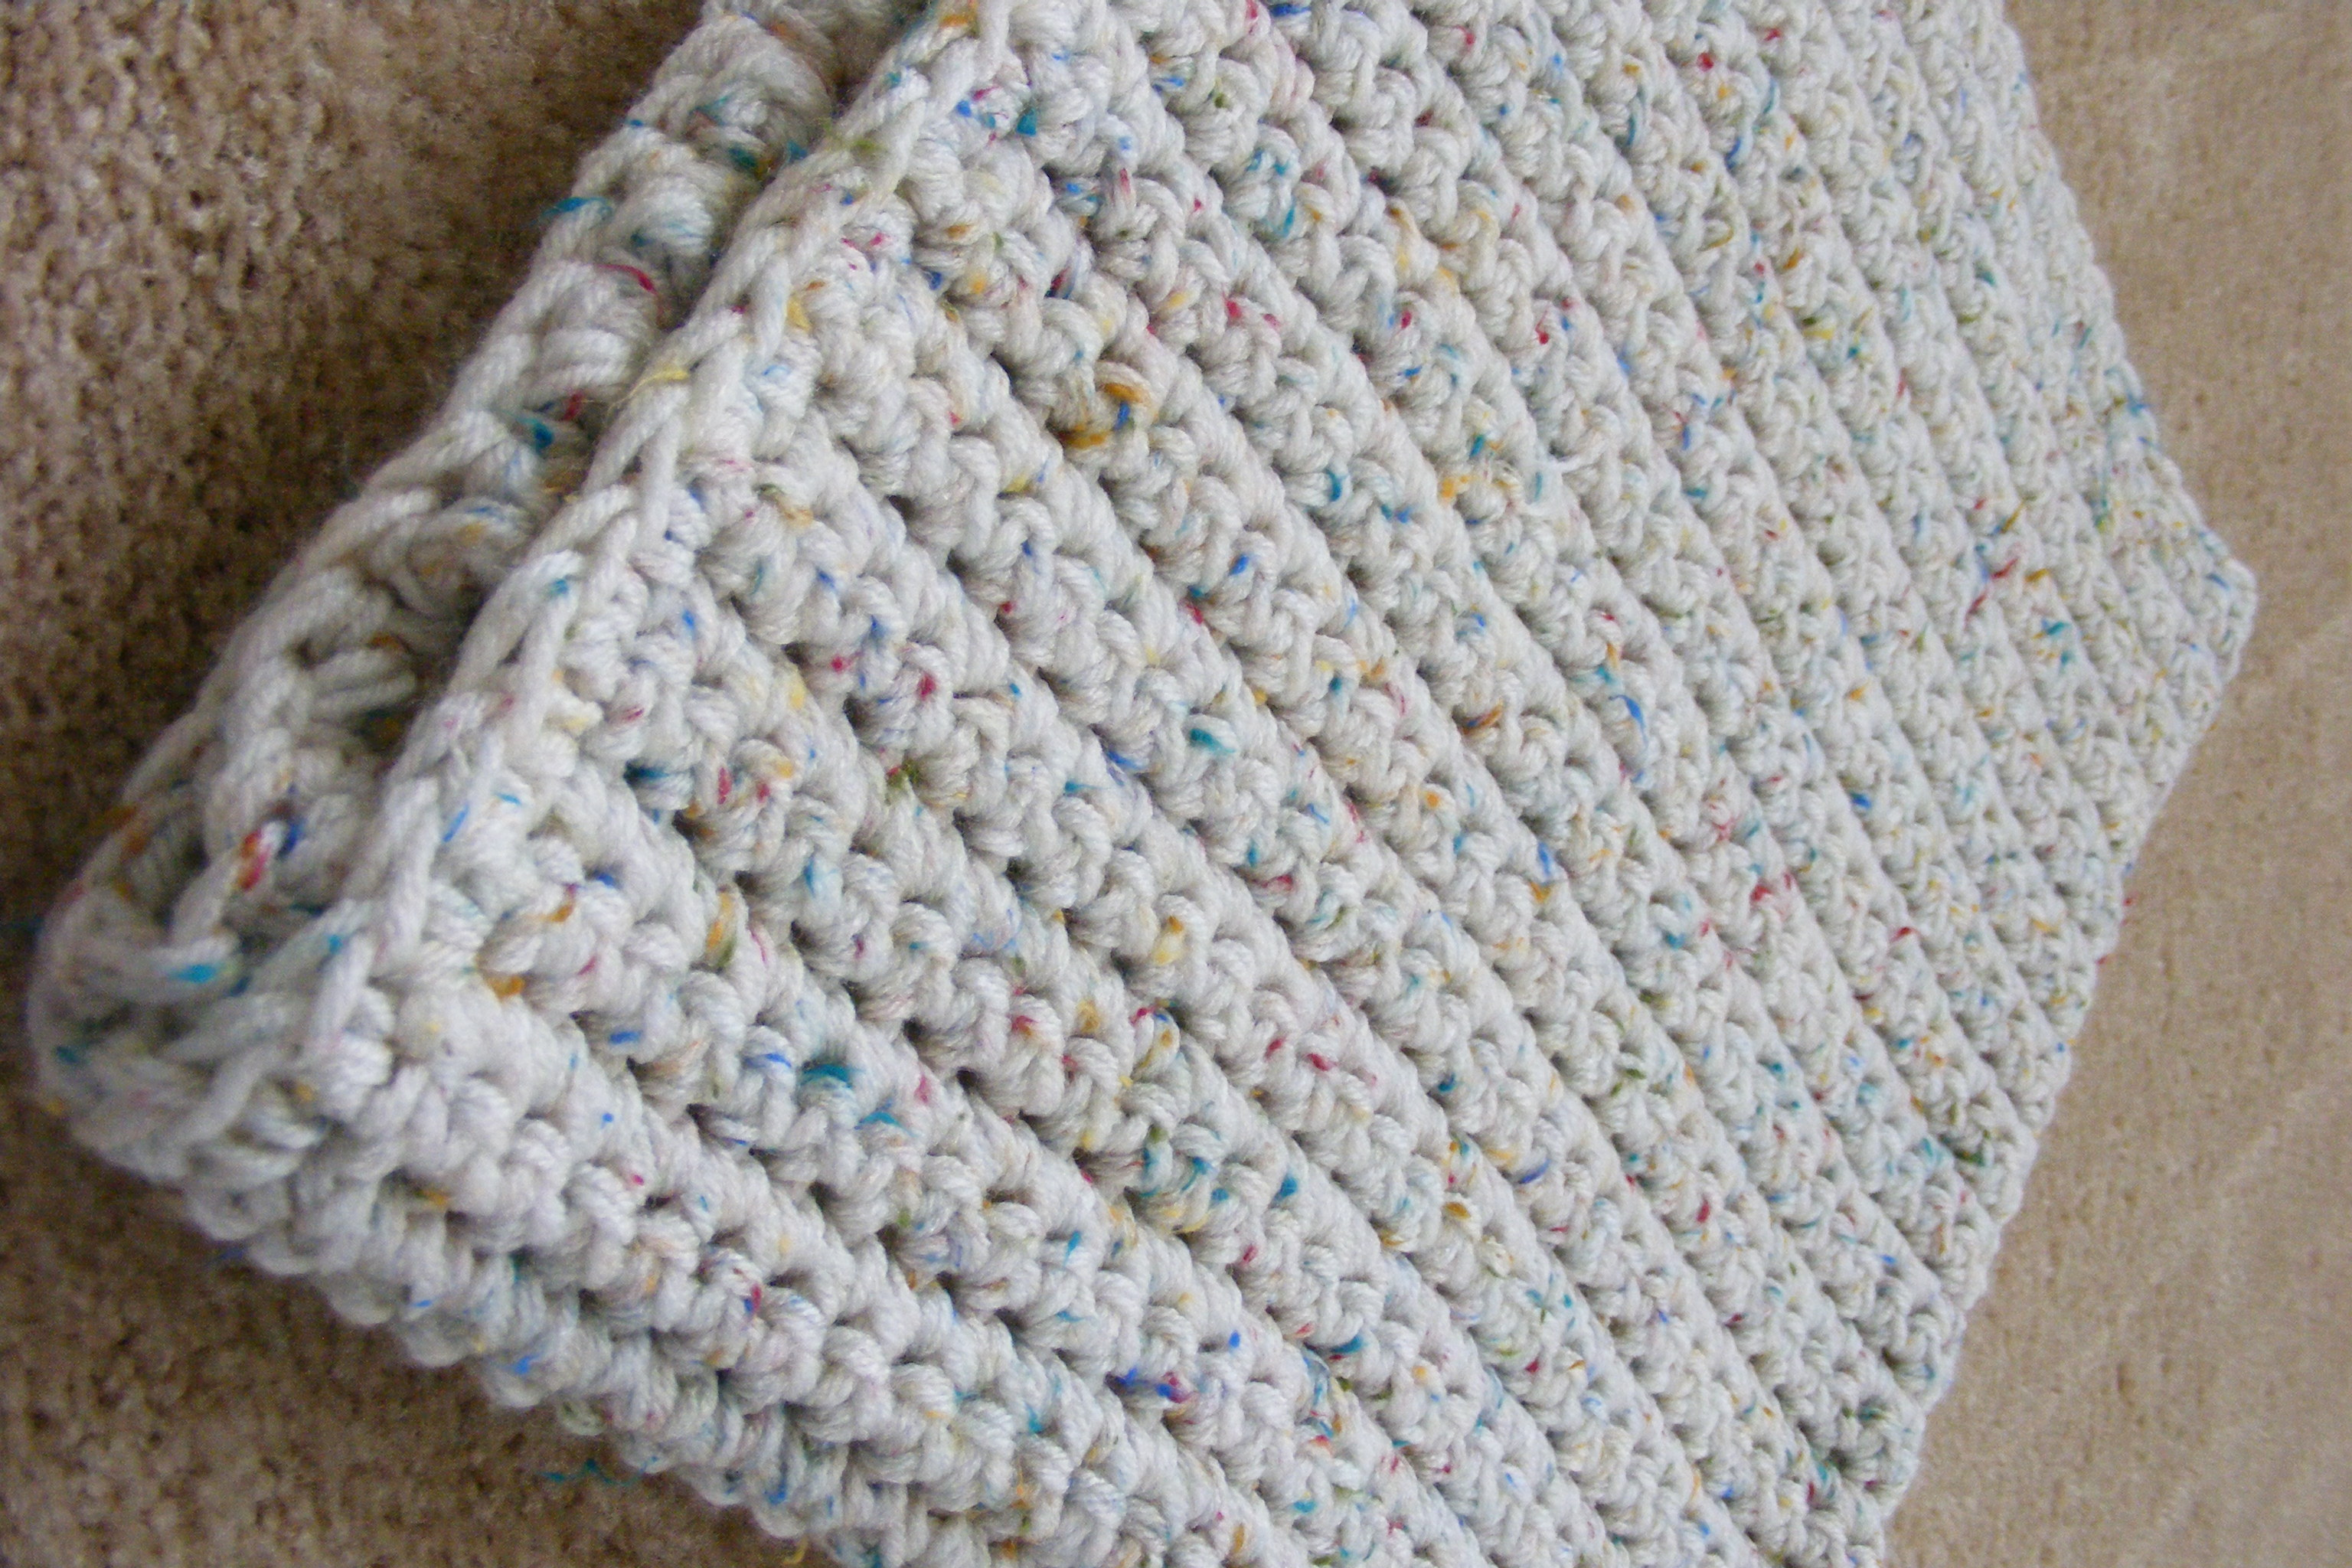 Crocheting A Baby Blanket For Beginners : Free Easy Crochet Patterns for Beginners - LoveToKnow: Advice